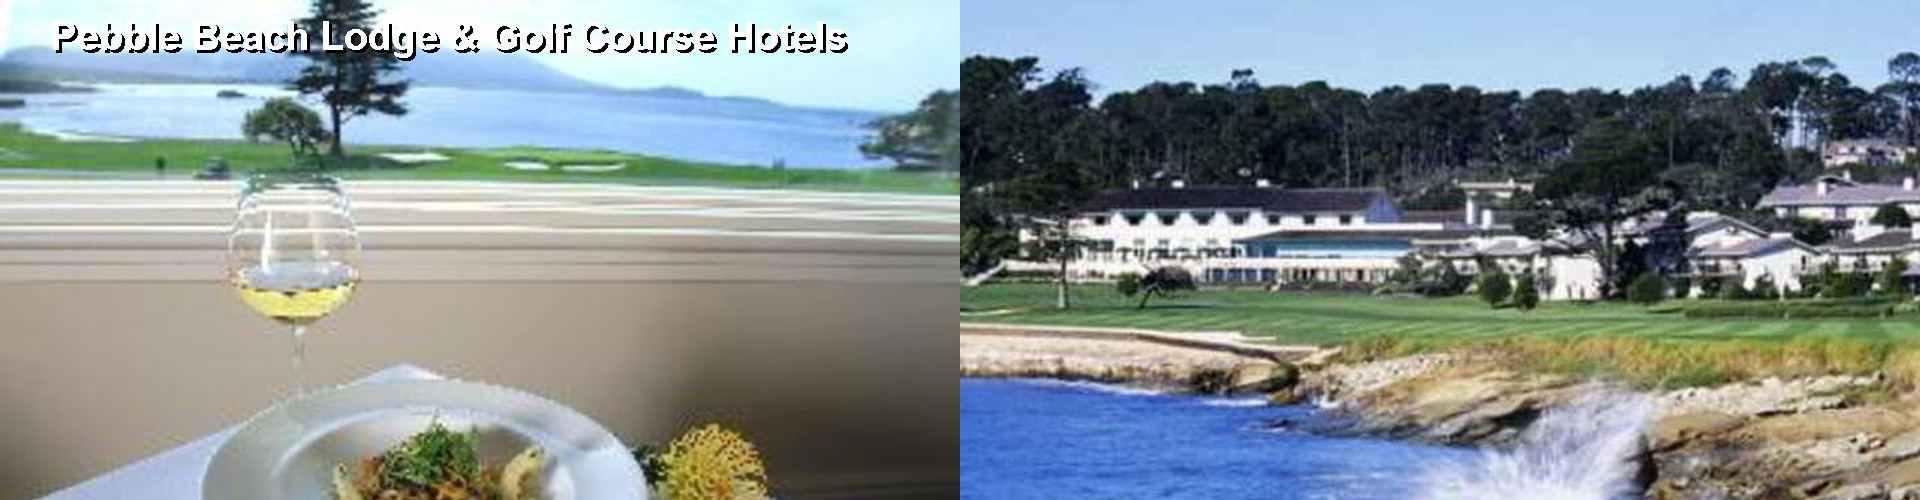 5 Best Hotels near Pebble Beach Lodge & Golf Course